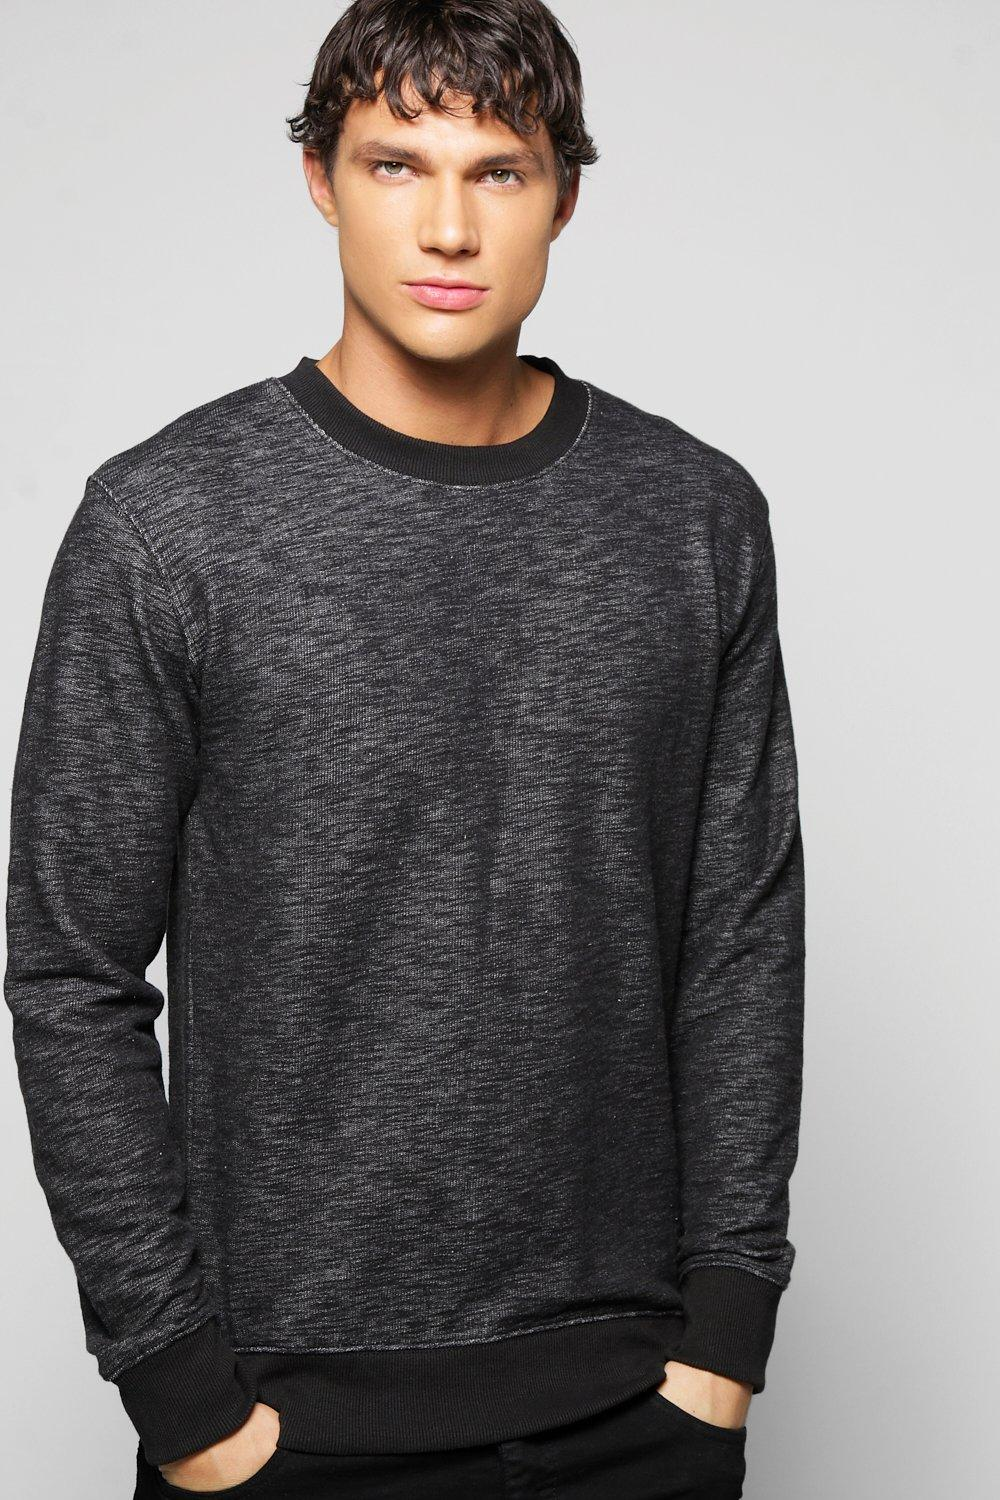 Space Dye Crew Neck Sweater